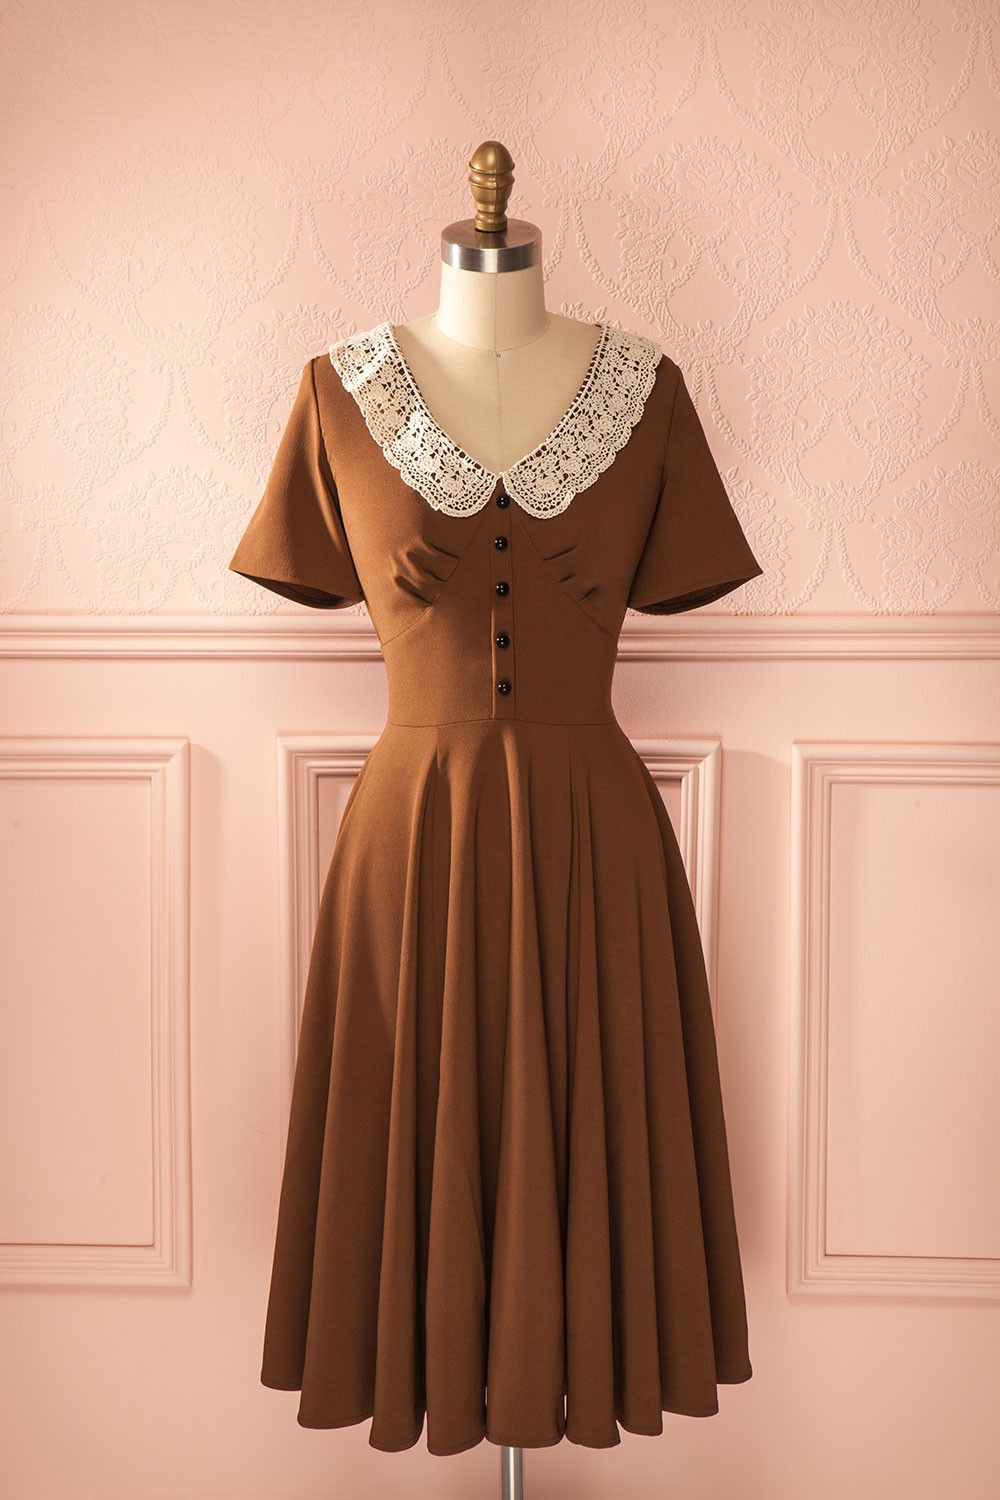 Élie café brown beige midi dresses and beige